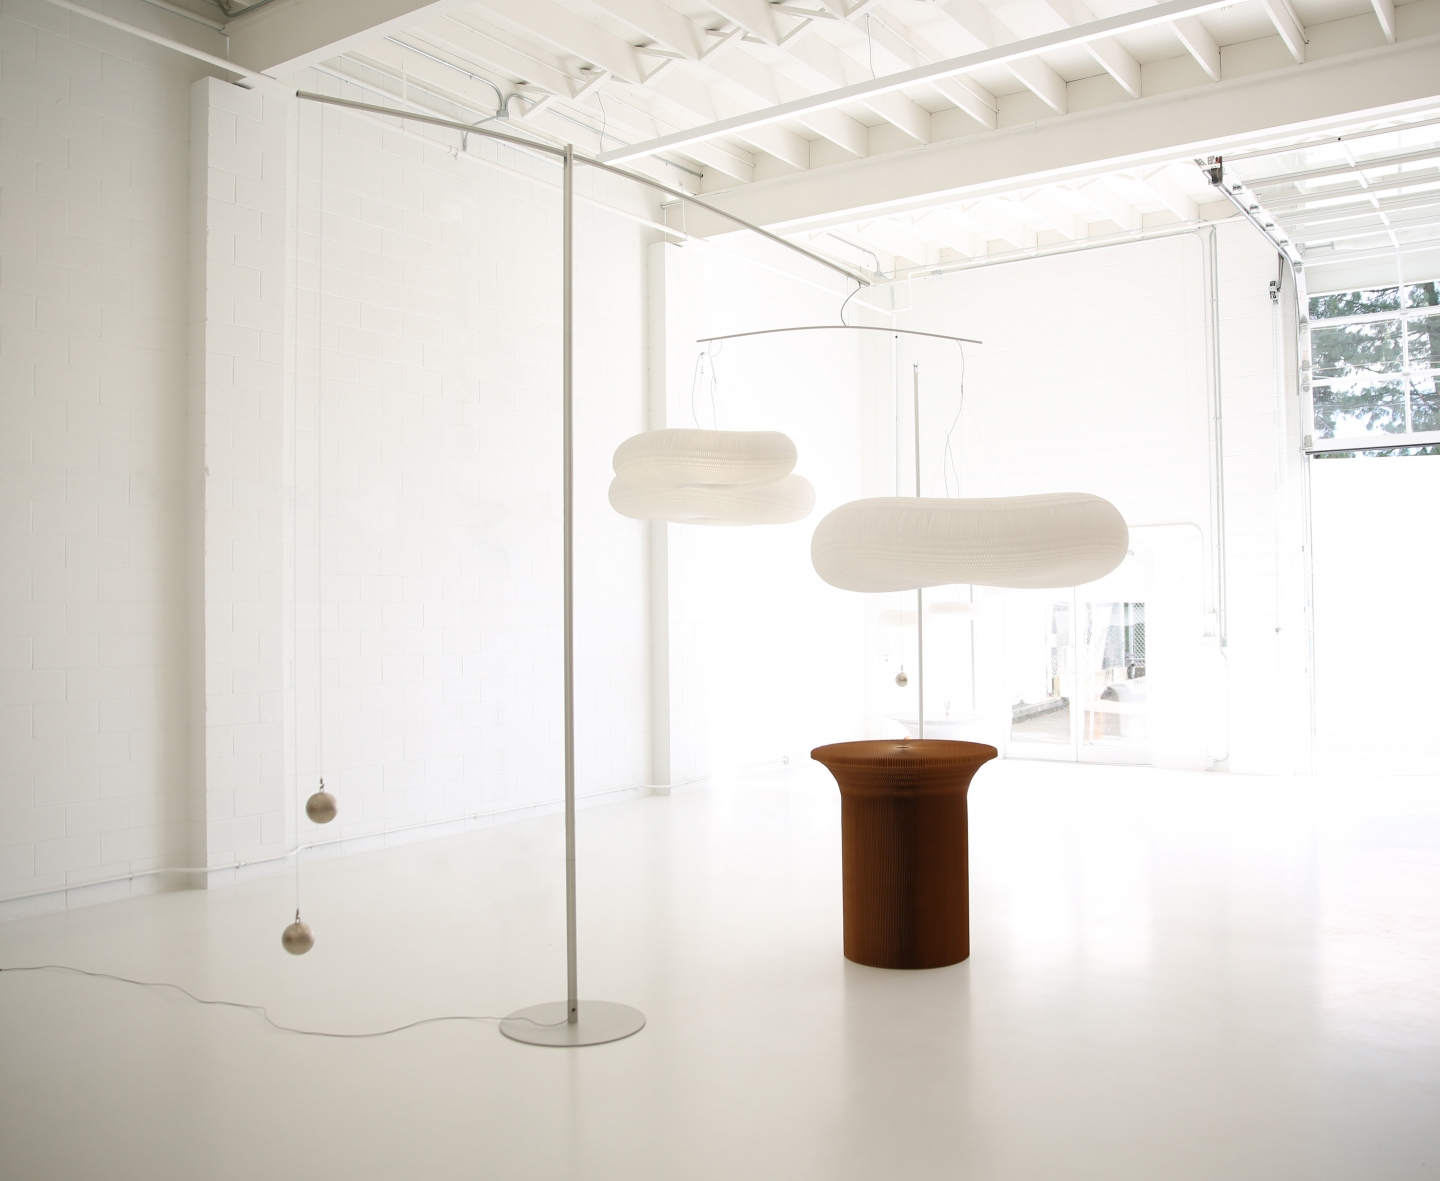 cloud mast holds two fishing weights and a cloud mobile in delicate balance